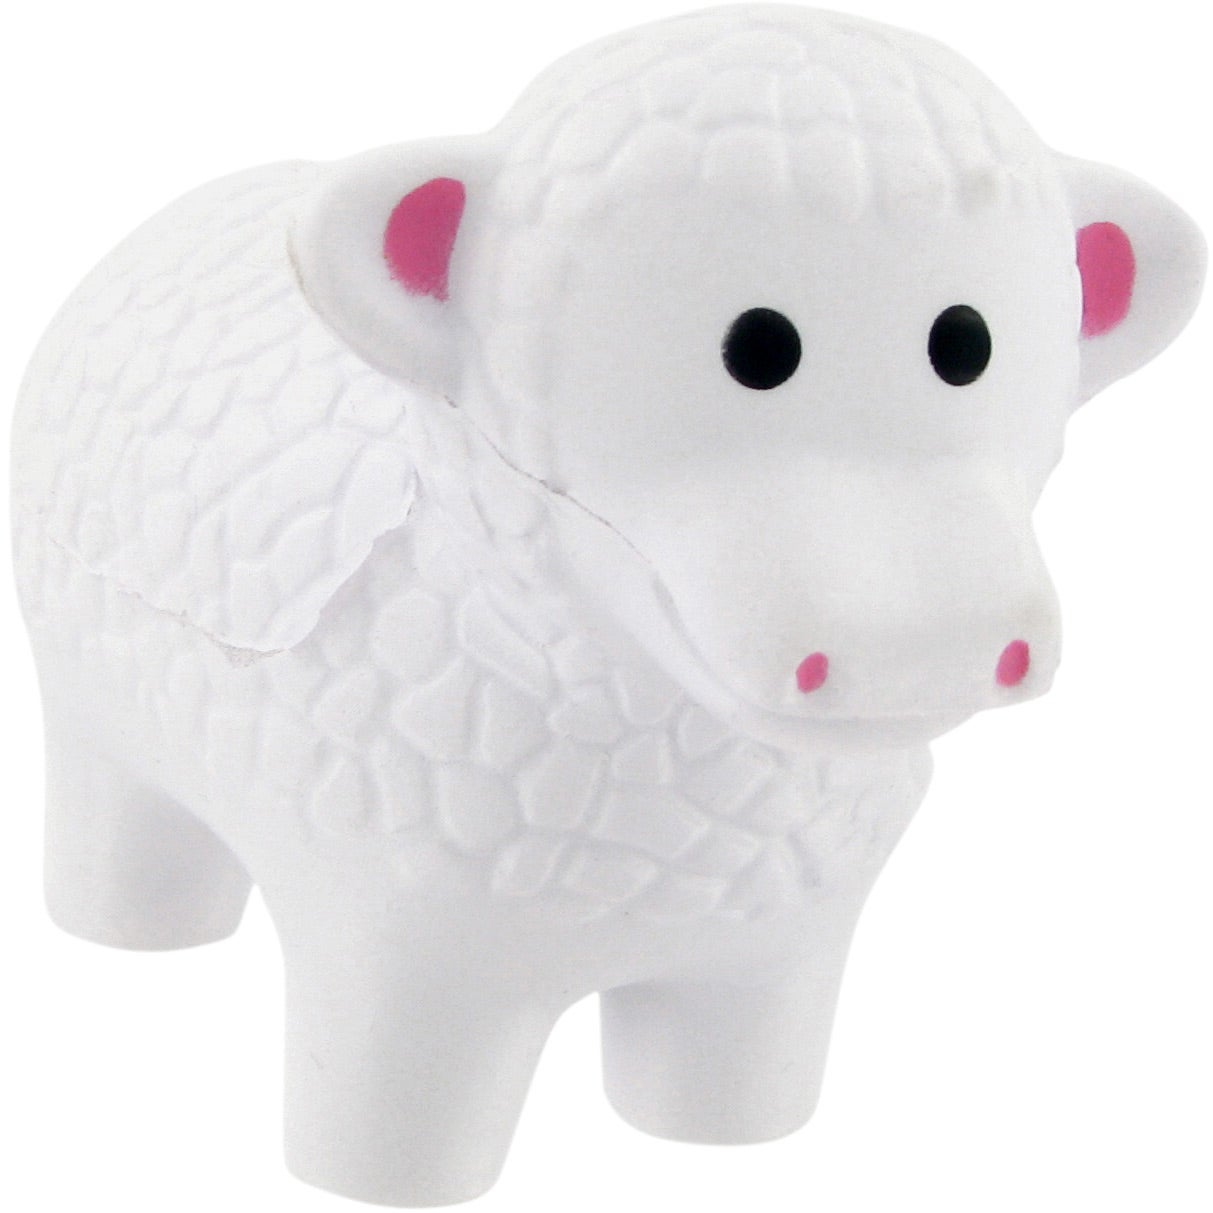 Sheep Stress Ball